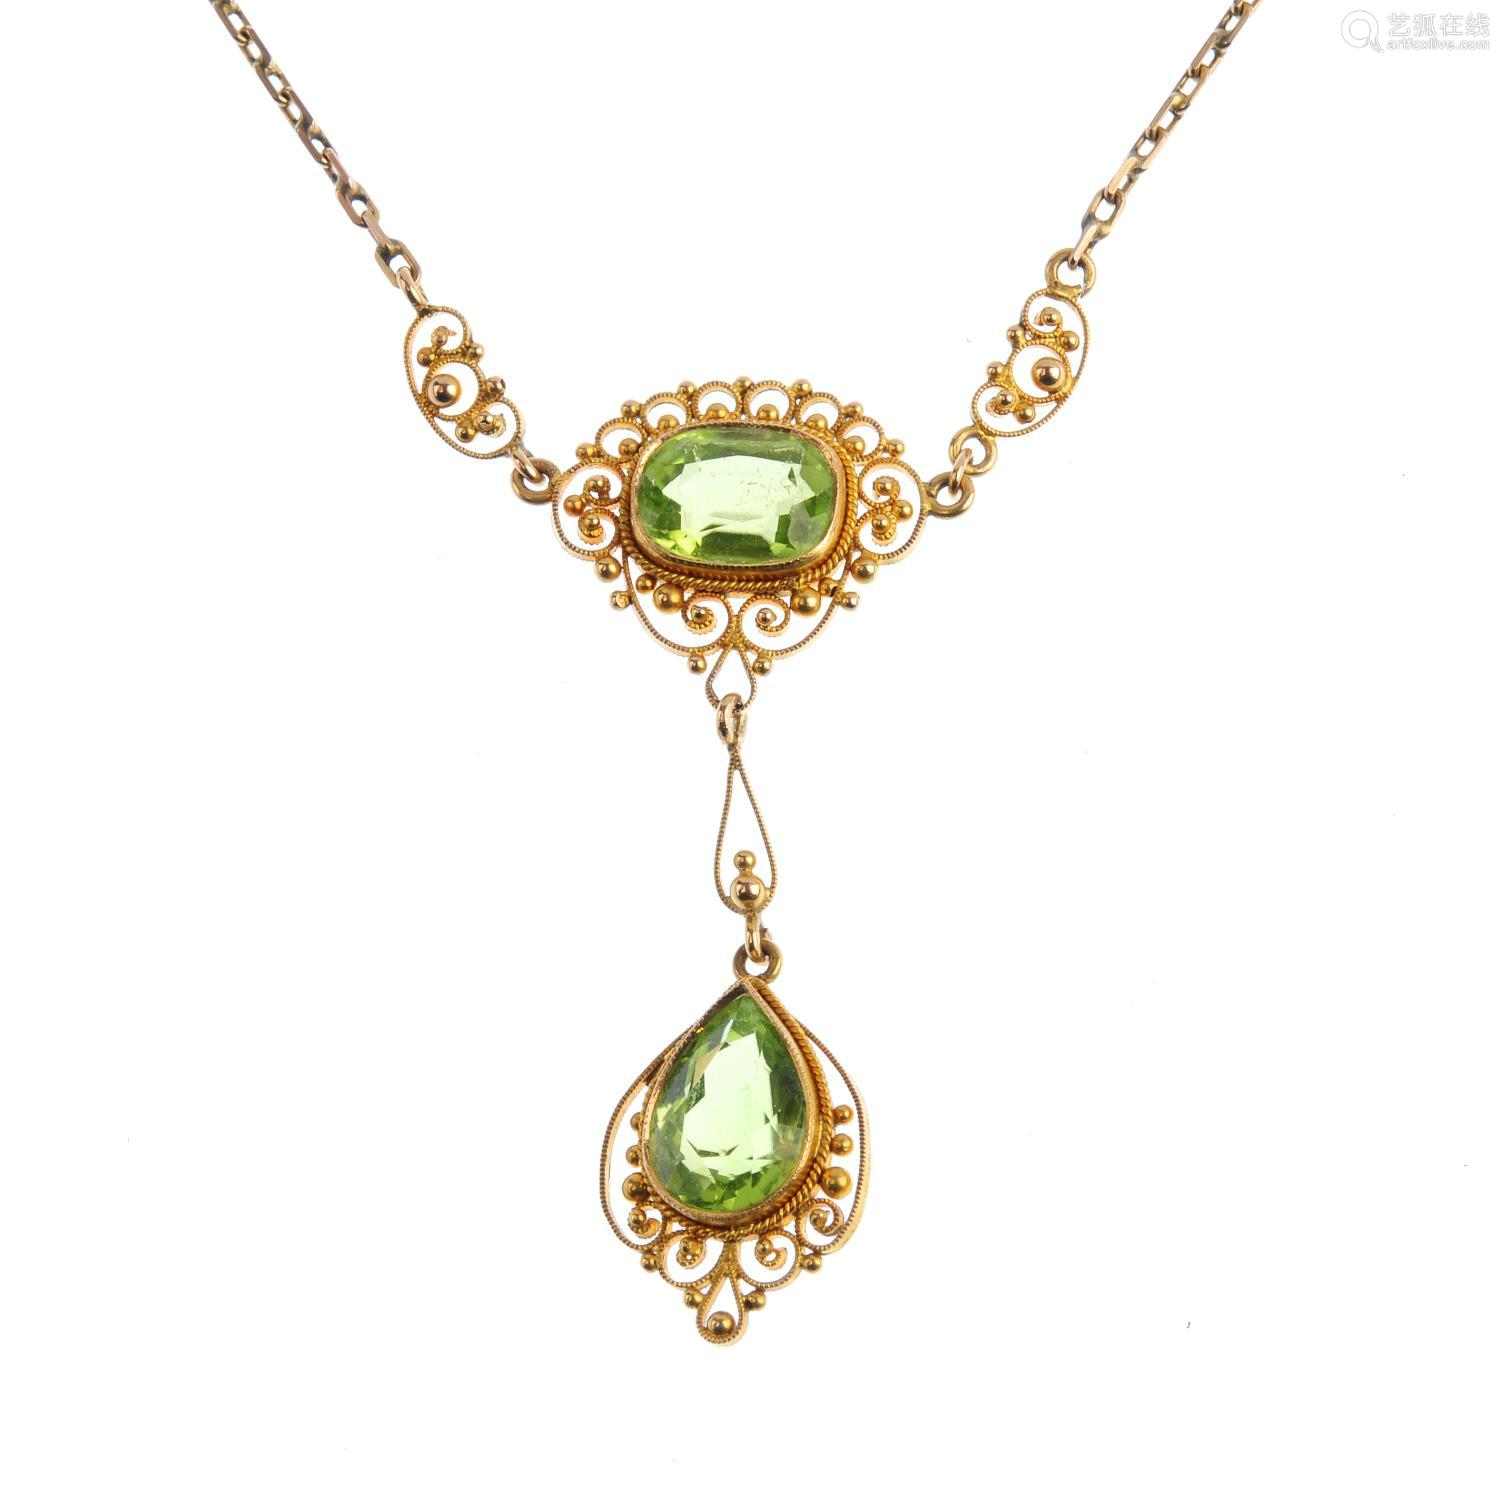 An early 20th century gold peridot necklace. The pear-shape peridot suspended from a cushion-shape